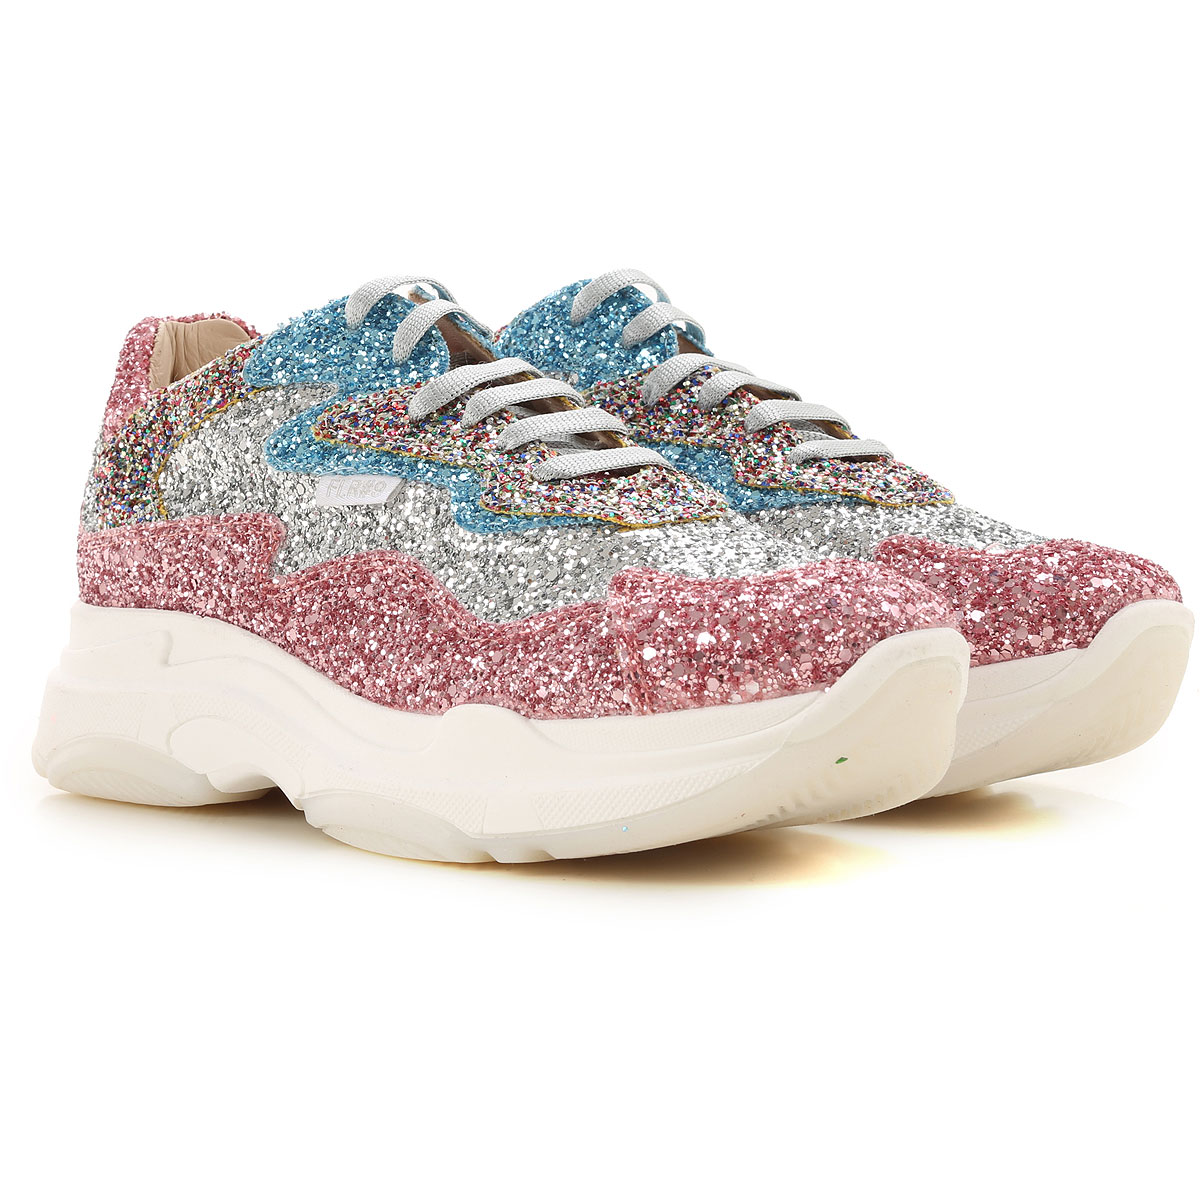 Florens Kids Shoes for Girls On Sale, Pink, Leather, 2019, 31 33 34 35 36 37 38